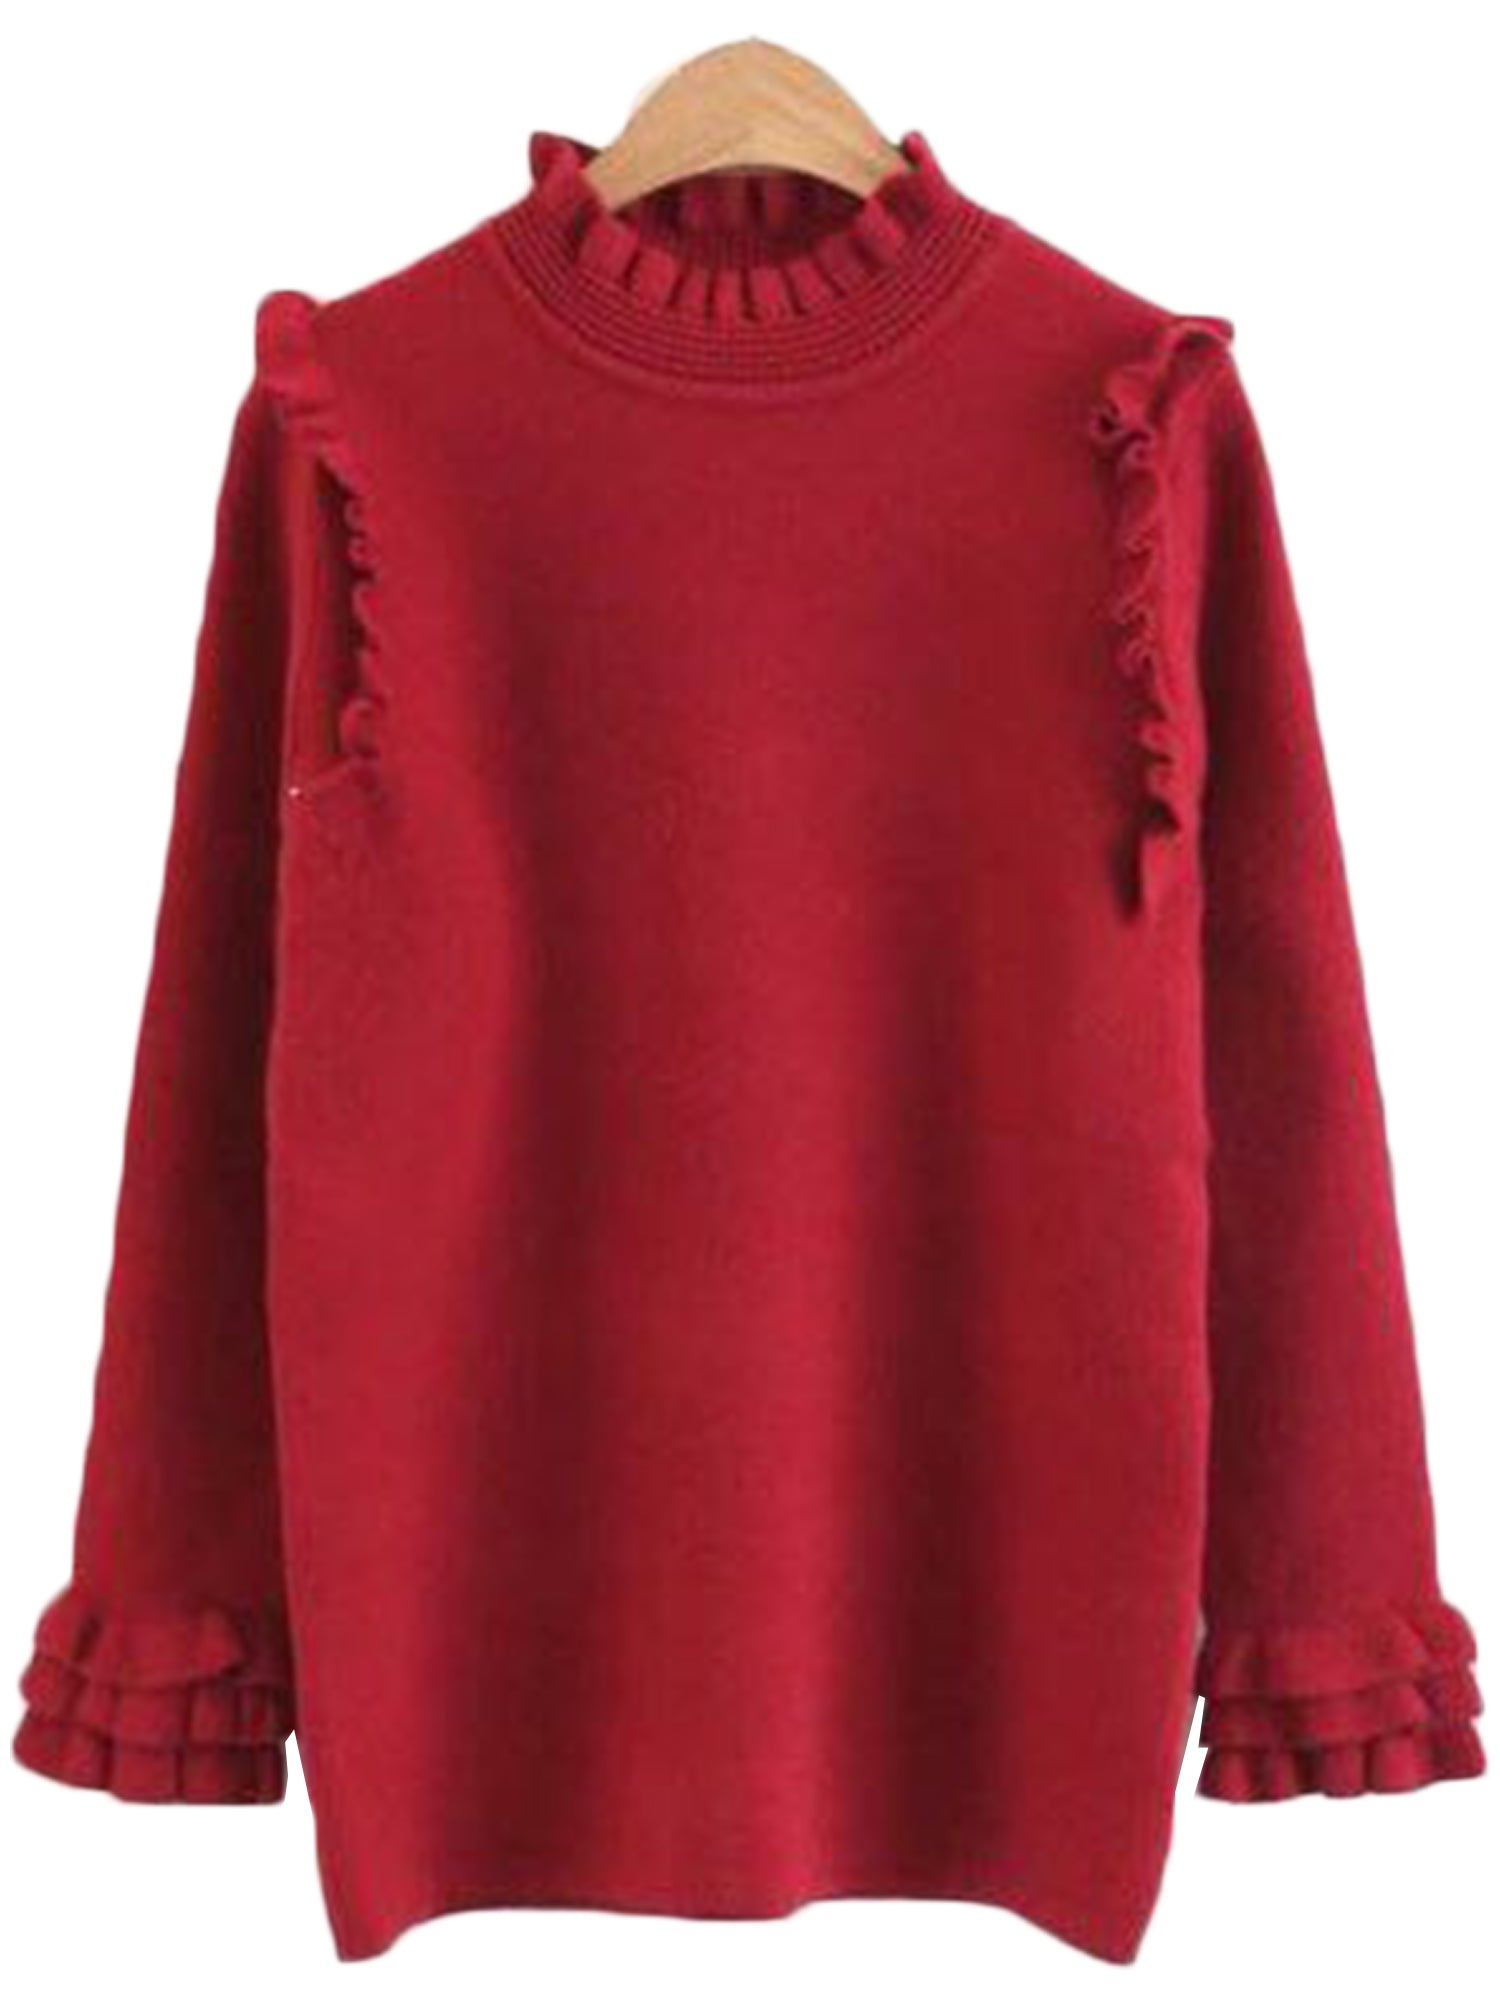 'Sadie' Frilly Knit Sweater ( 3 Colors Available )